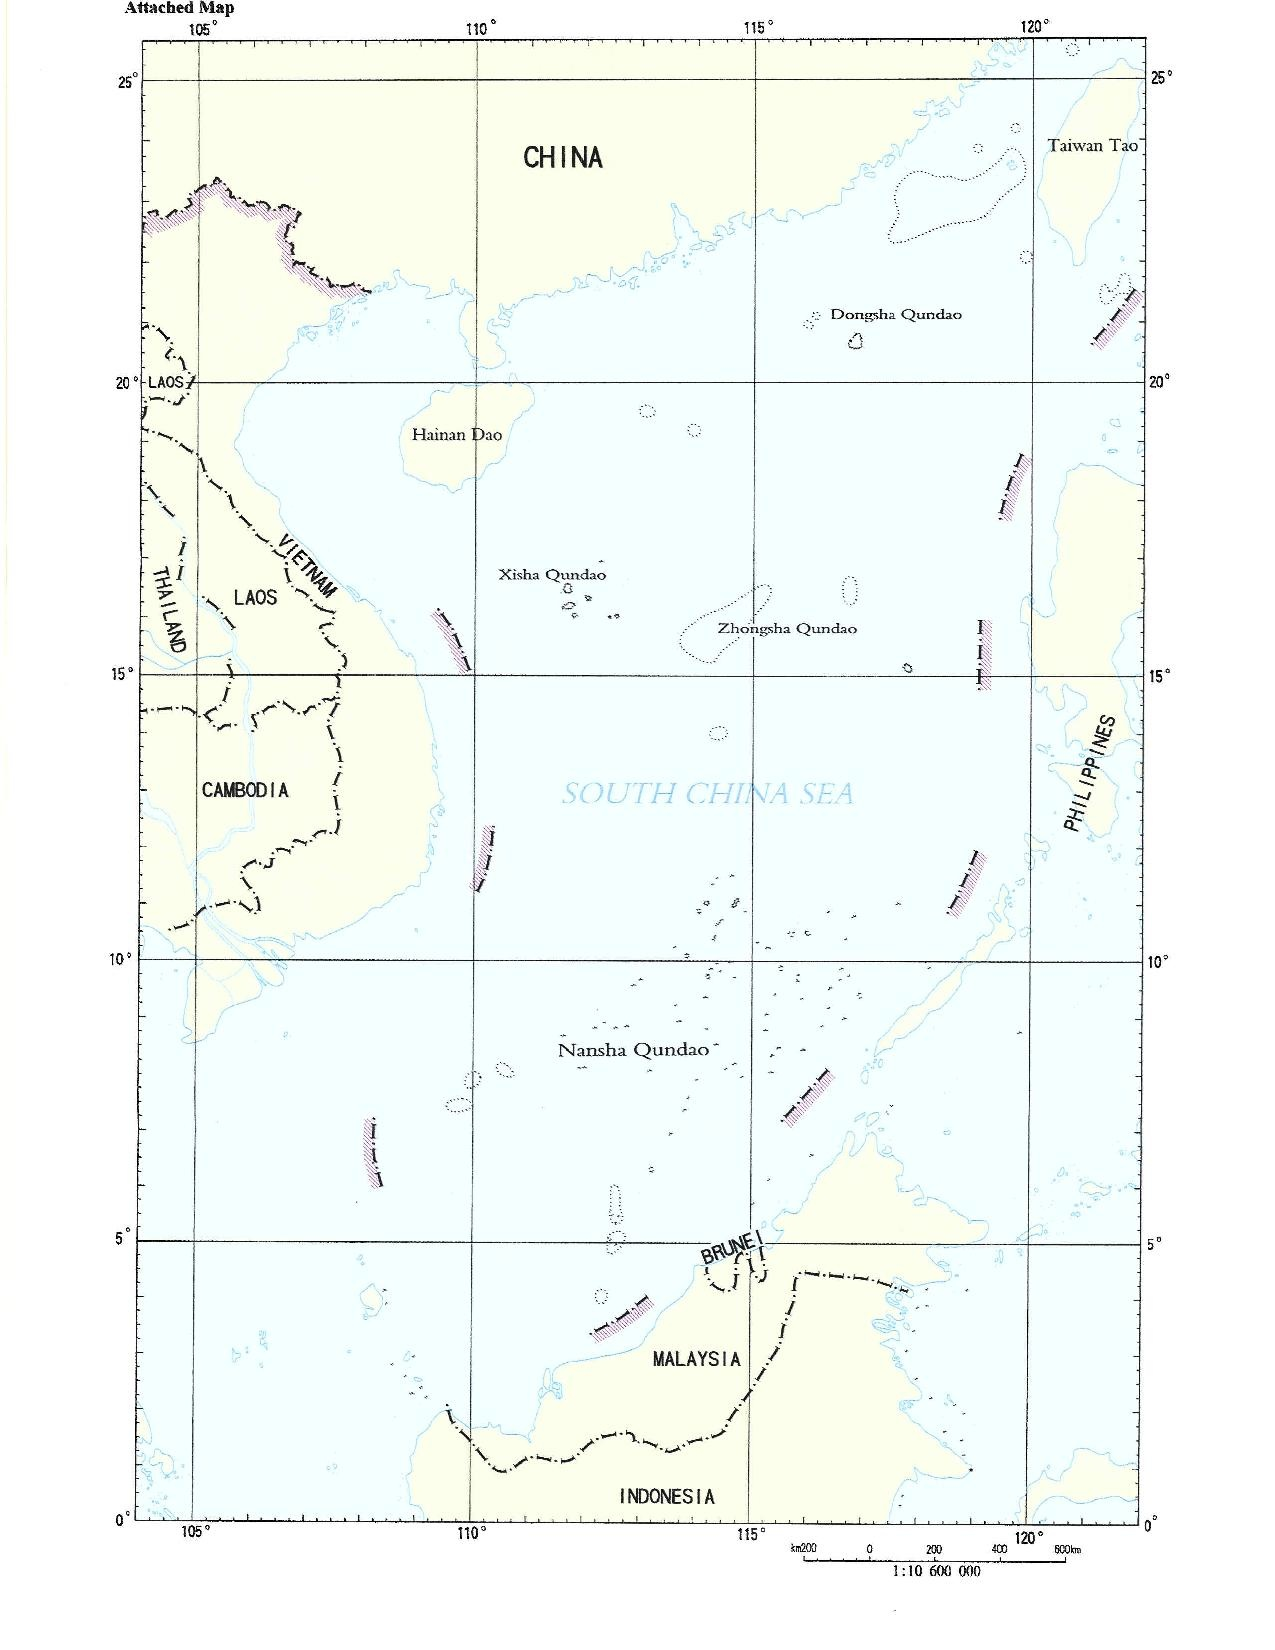 China's 2009 nine-dash line map submission to the UN.pdf